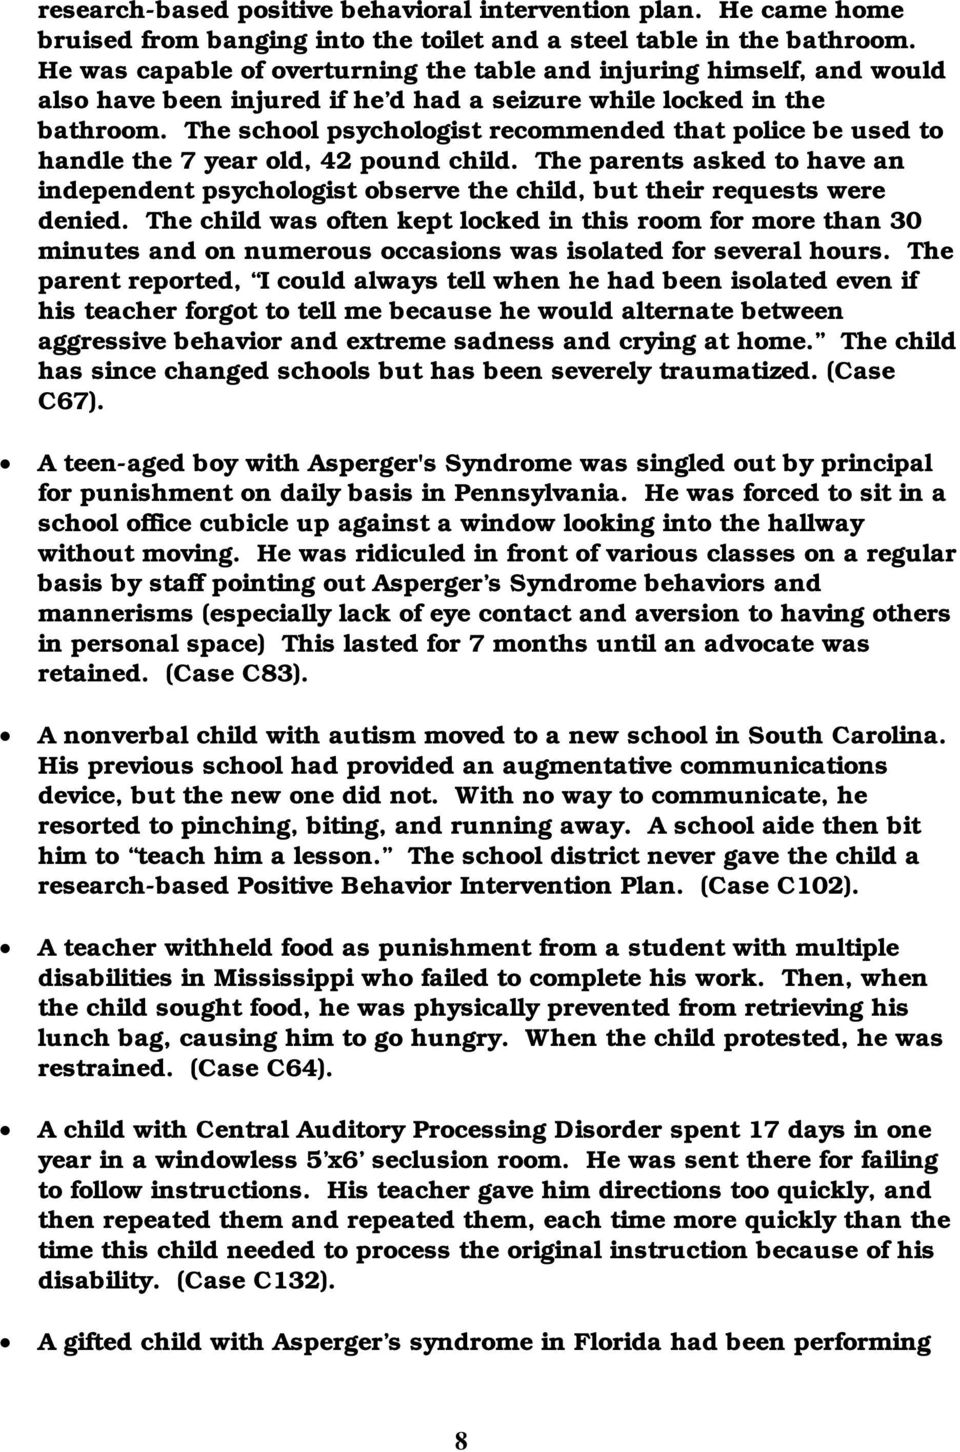 The school psychologist recommended that police be used to handle the 7 year, 42 pound child. The parents asked to have an independent psychologist observe the child, but their requests were denied.